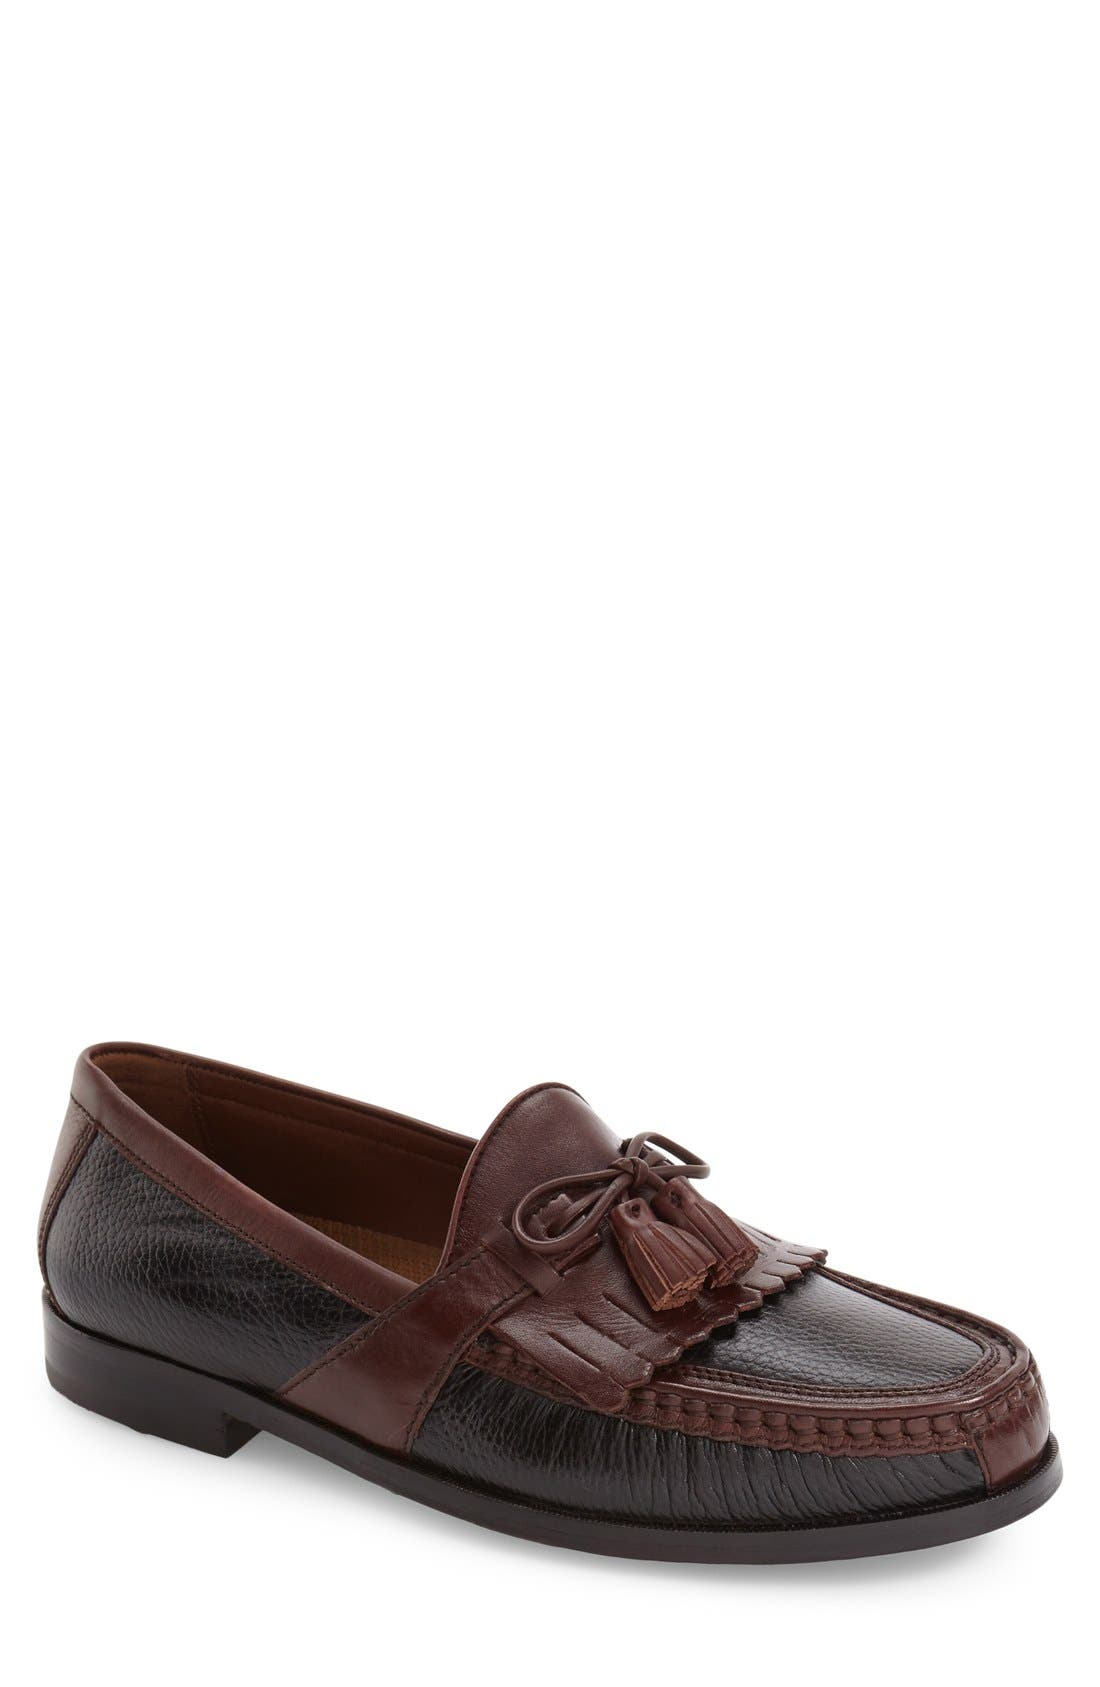 JOHNSTON & MURPHY 'Aragon II' Loafer, Main, color, BLACK/ BROWN LEATHER